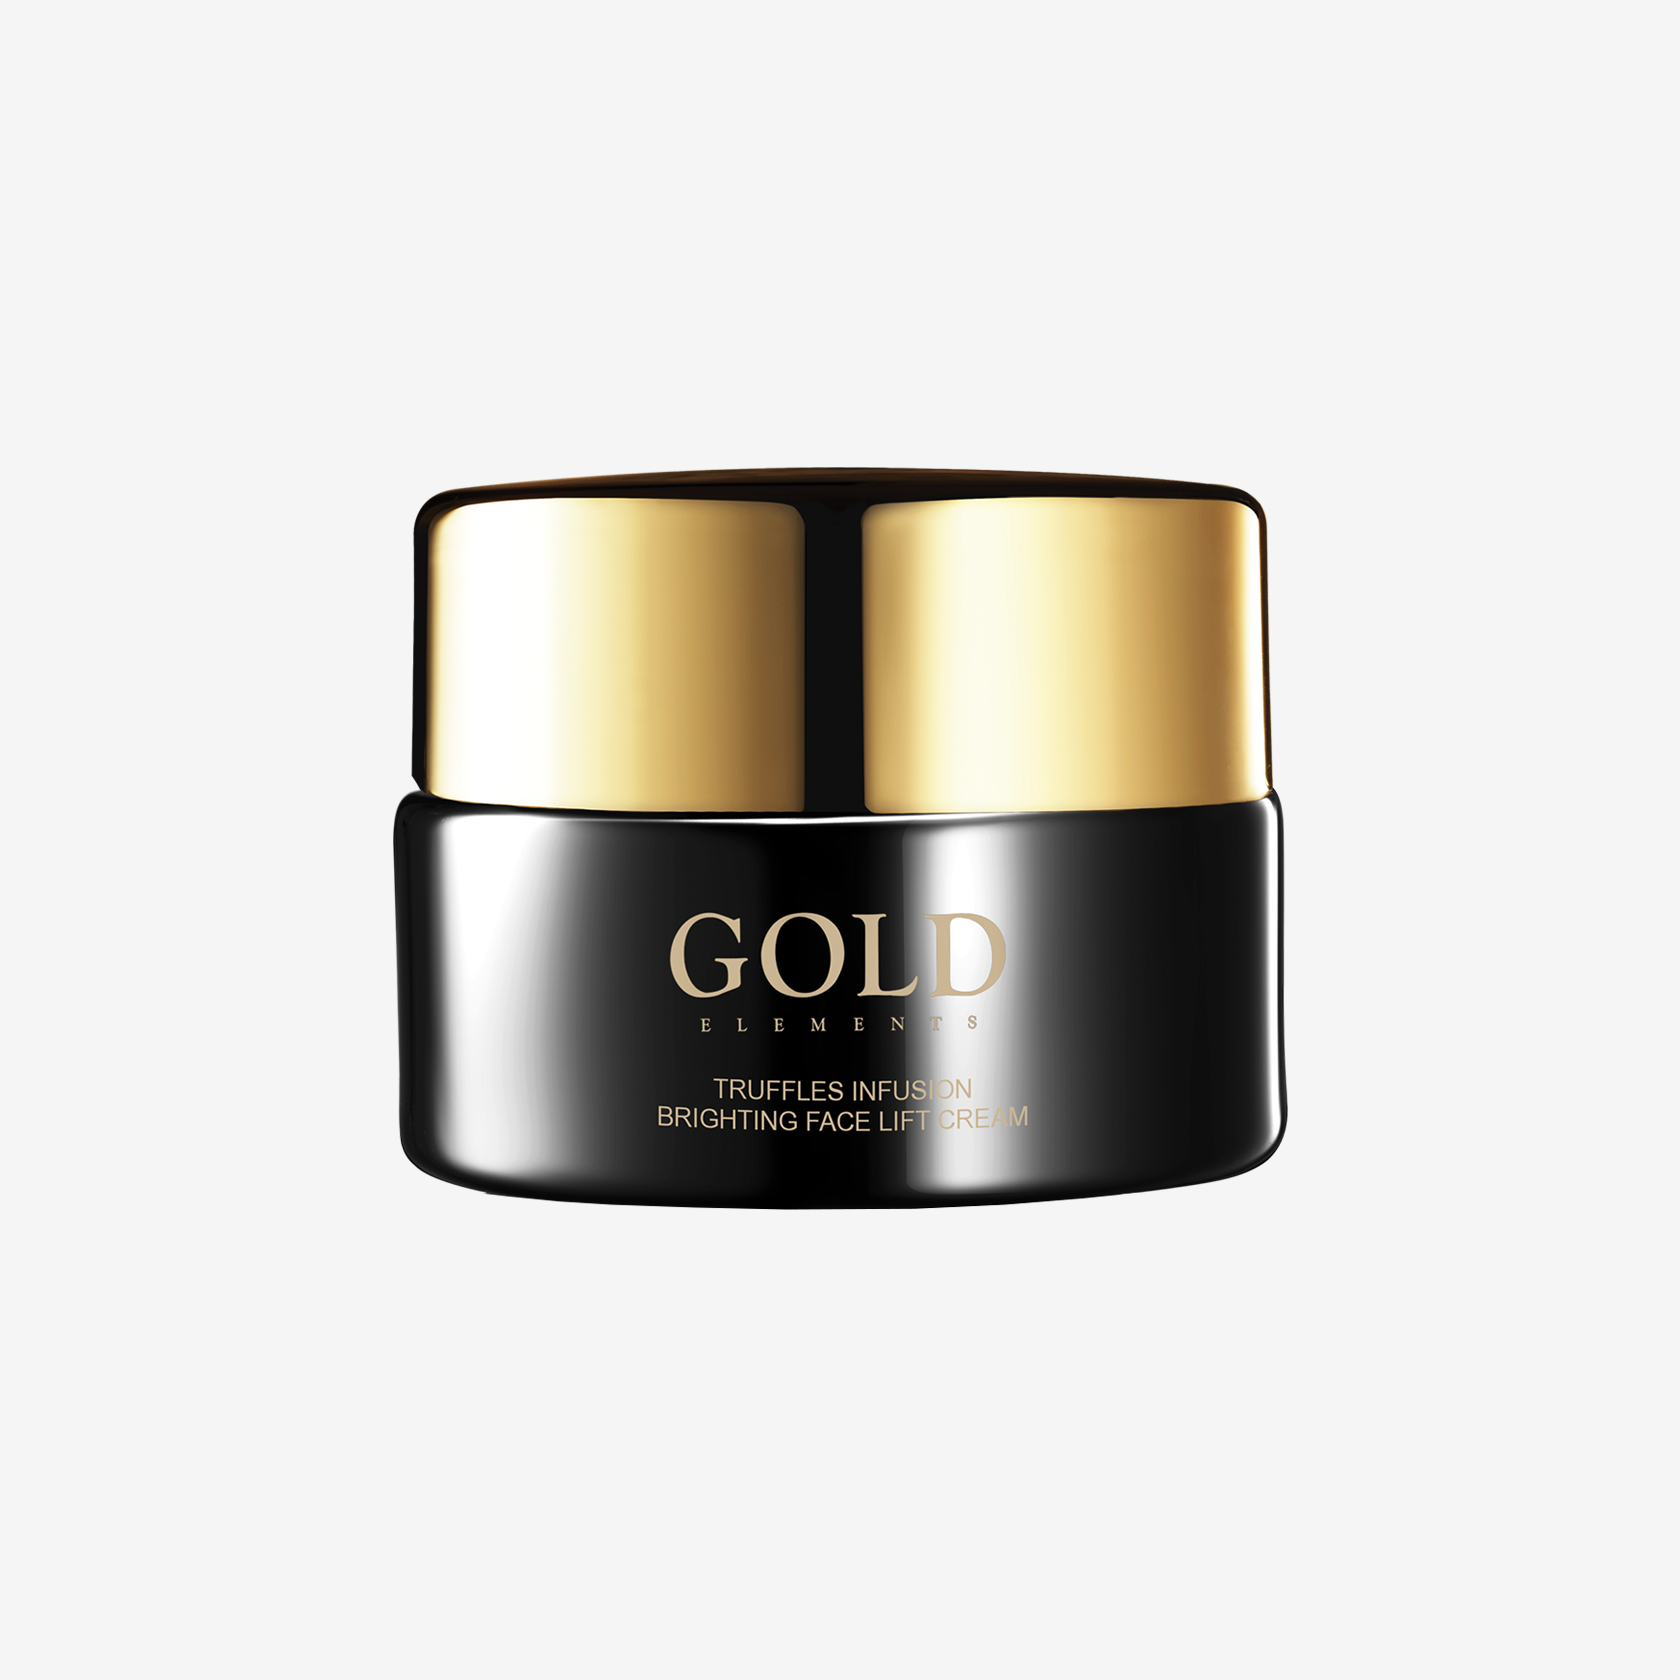 Крем для лица Truffles Infusion Brightening Face Lift Cream, Gold Elements